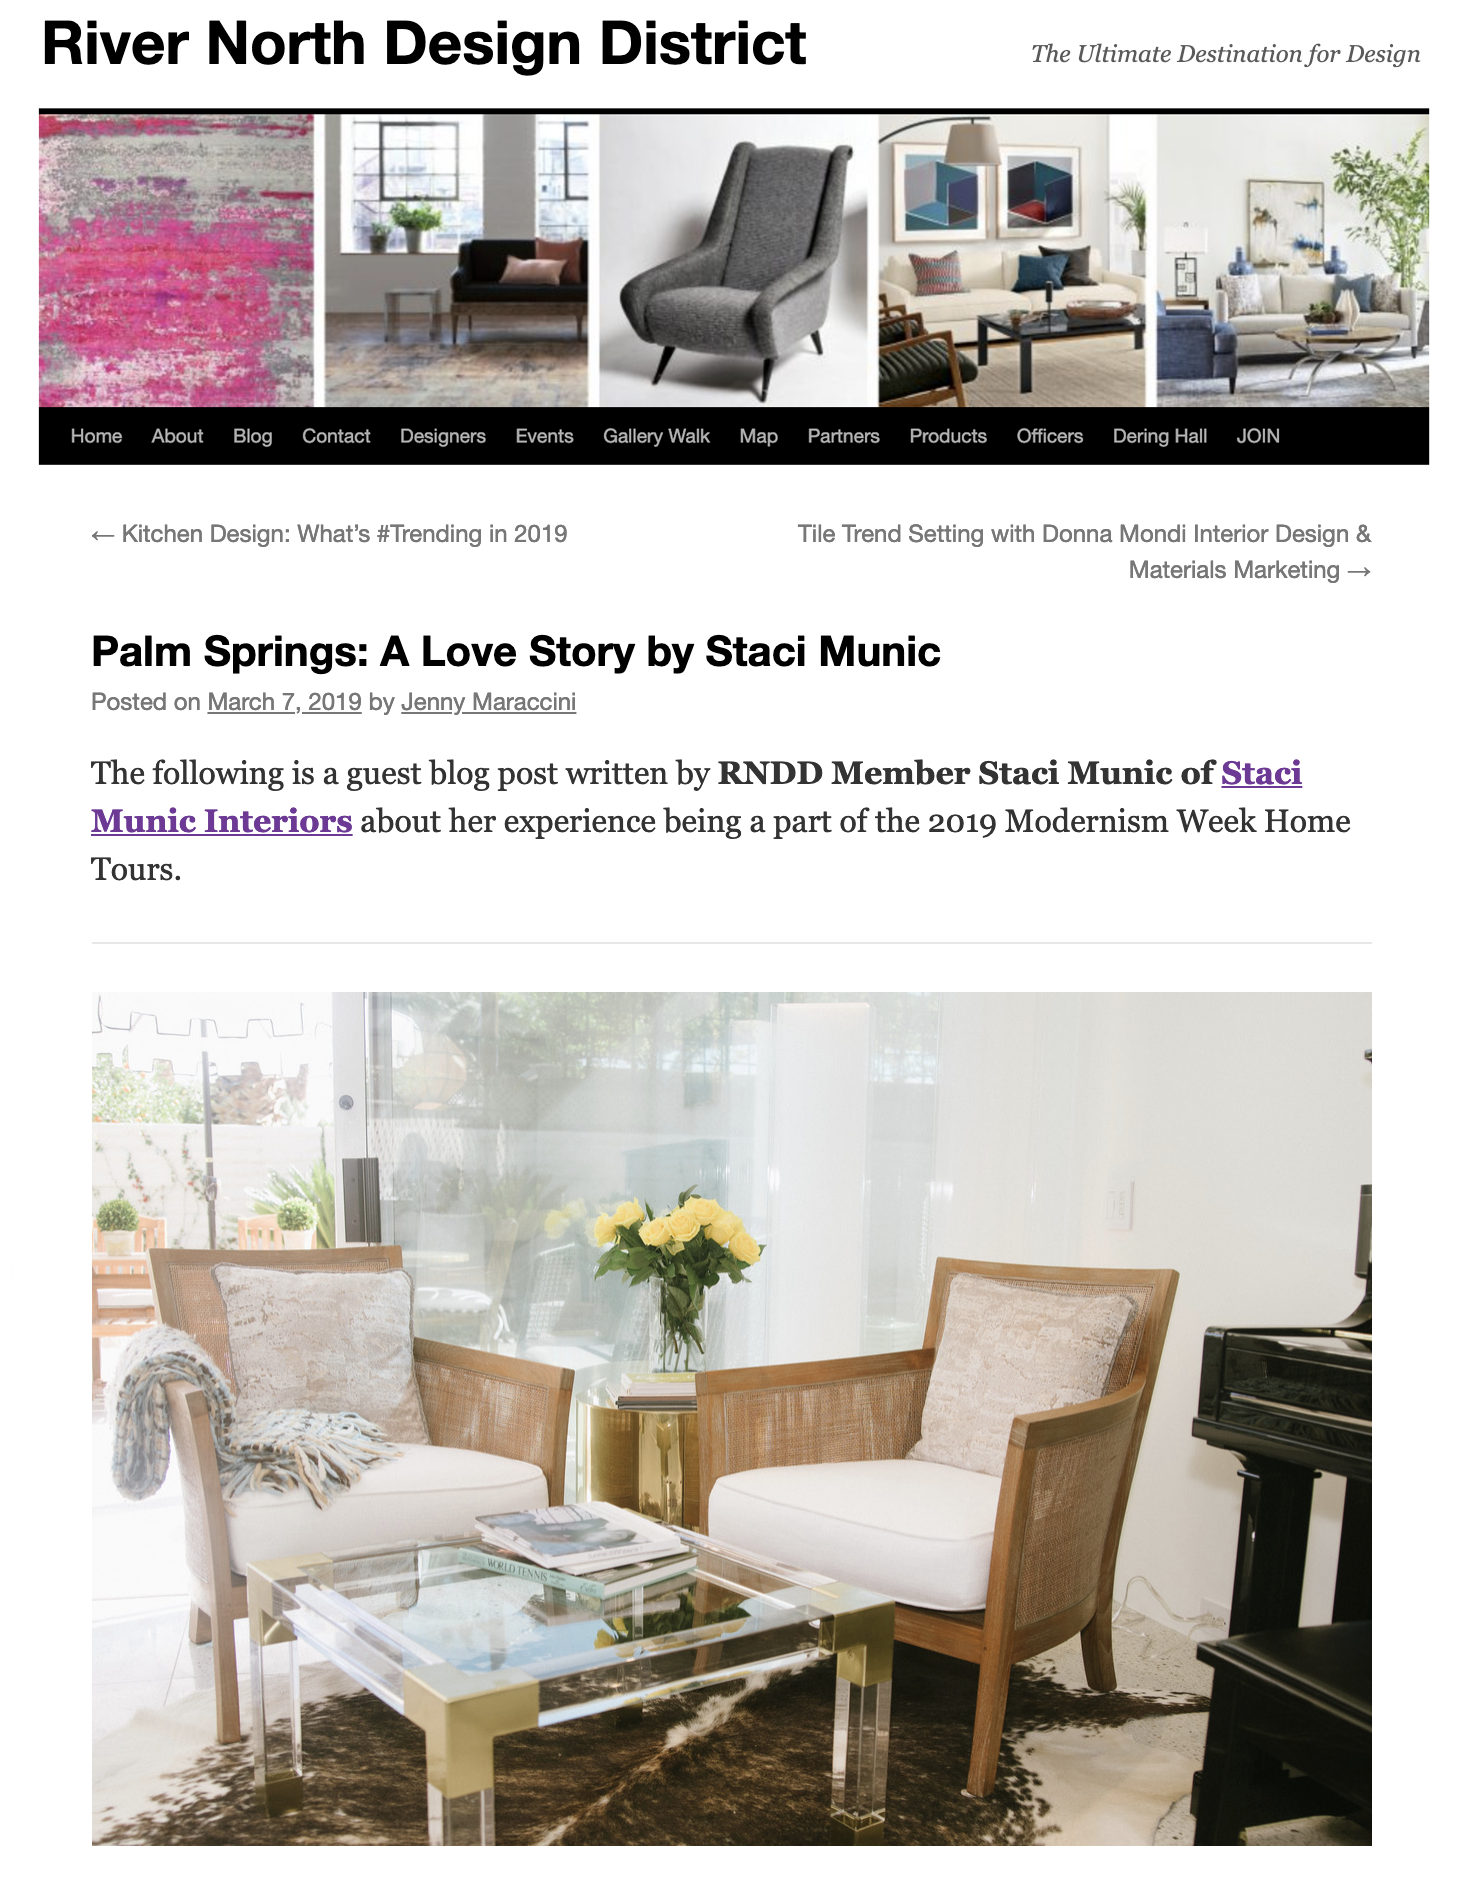 rivernorthdesigndistrict-2019-03-07-palm-springs-a-love-story-by-staci-munic.png